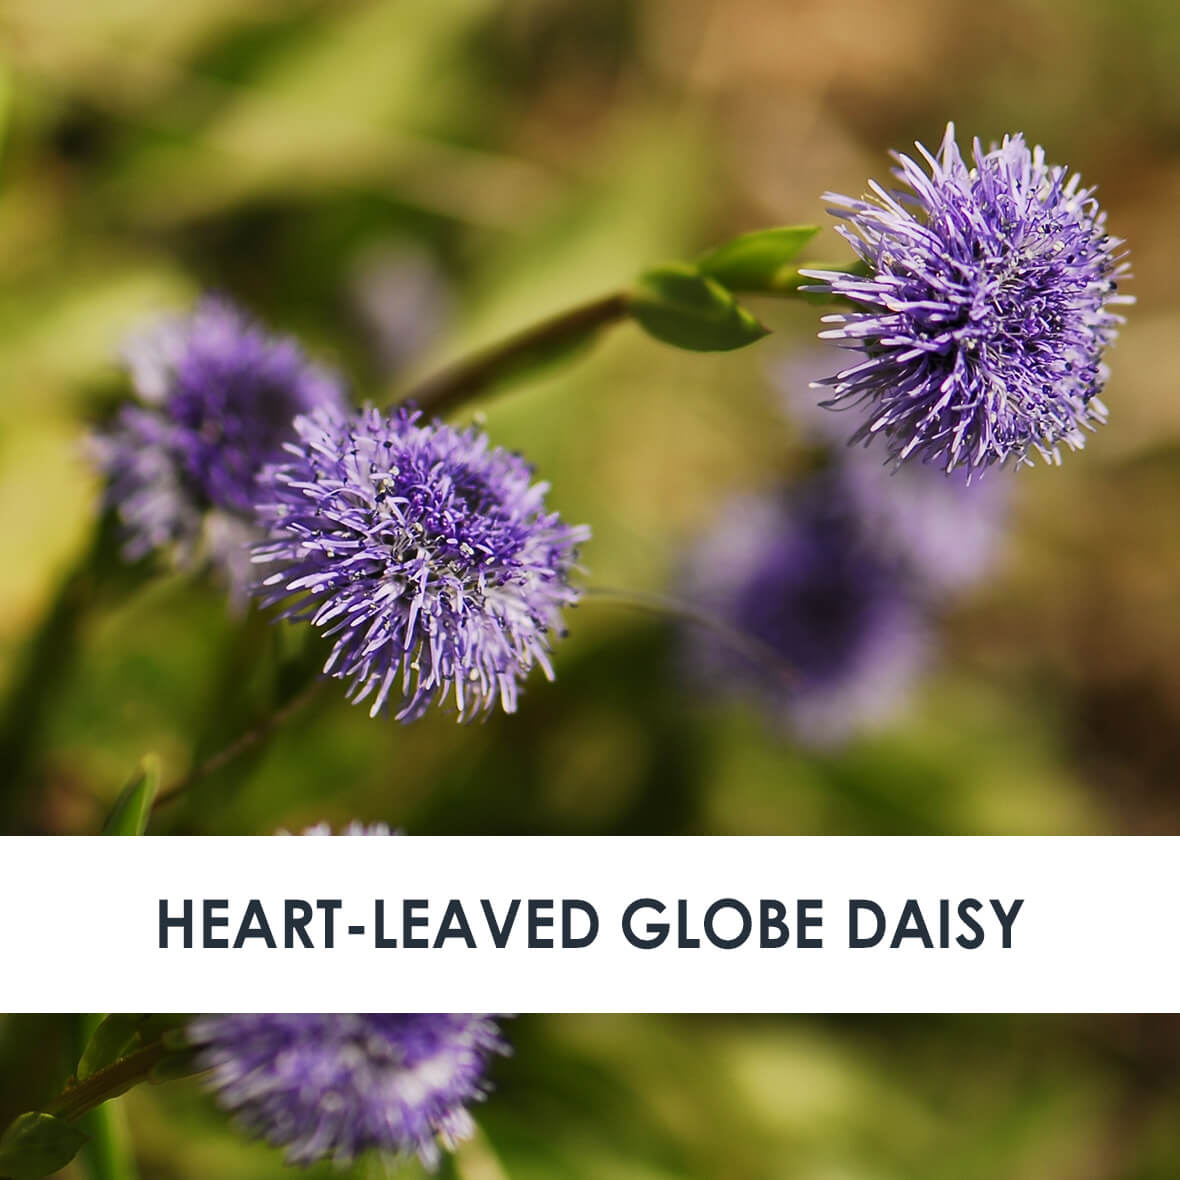 Heart-leaved Globe Daisy Skincare Benefits